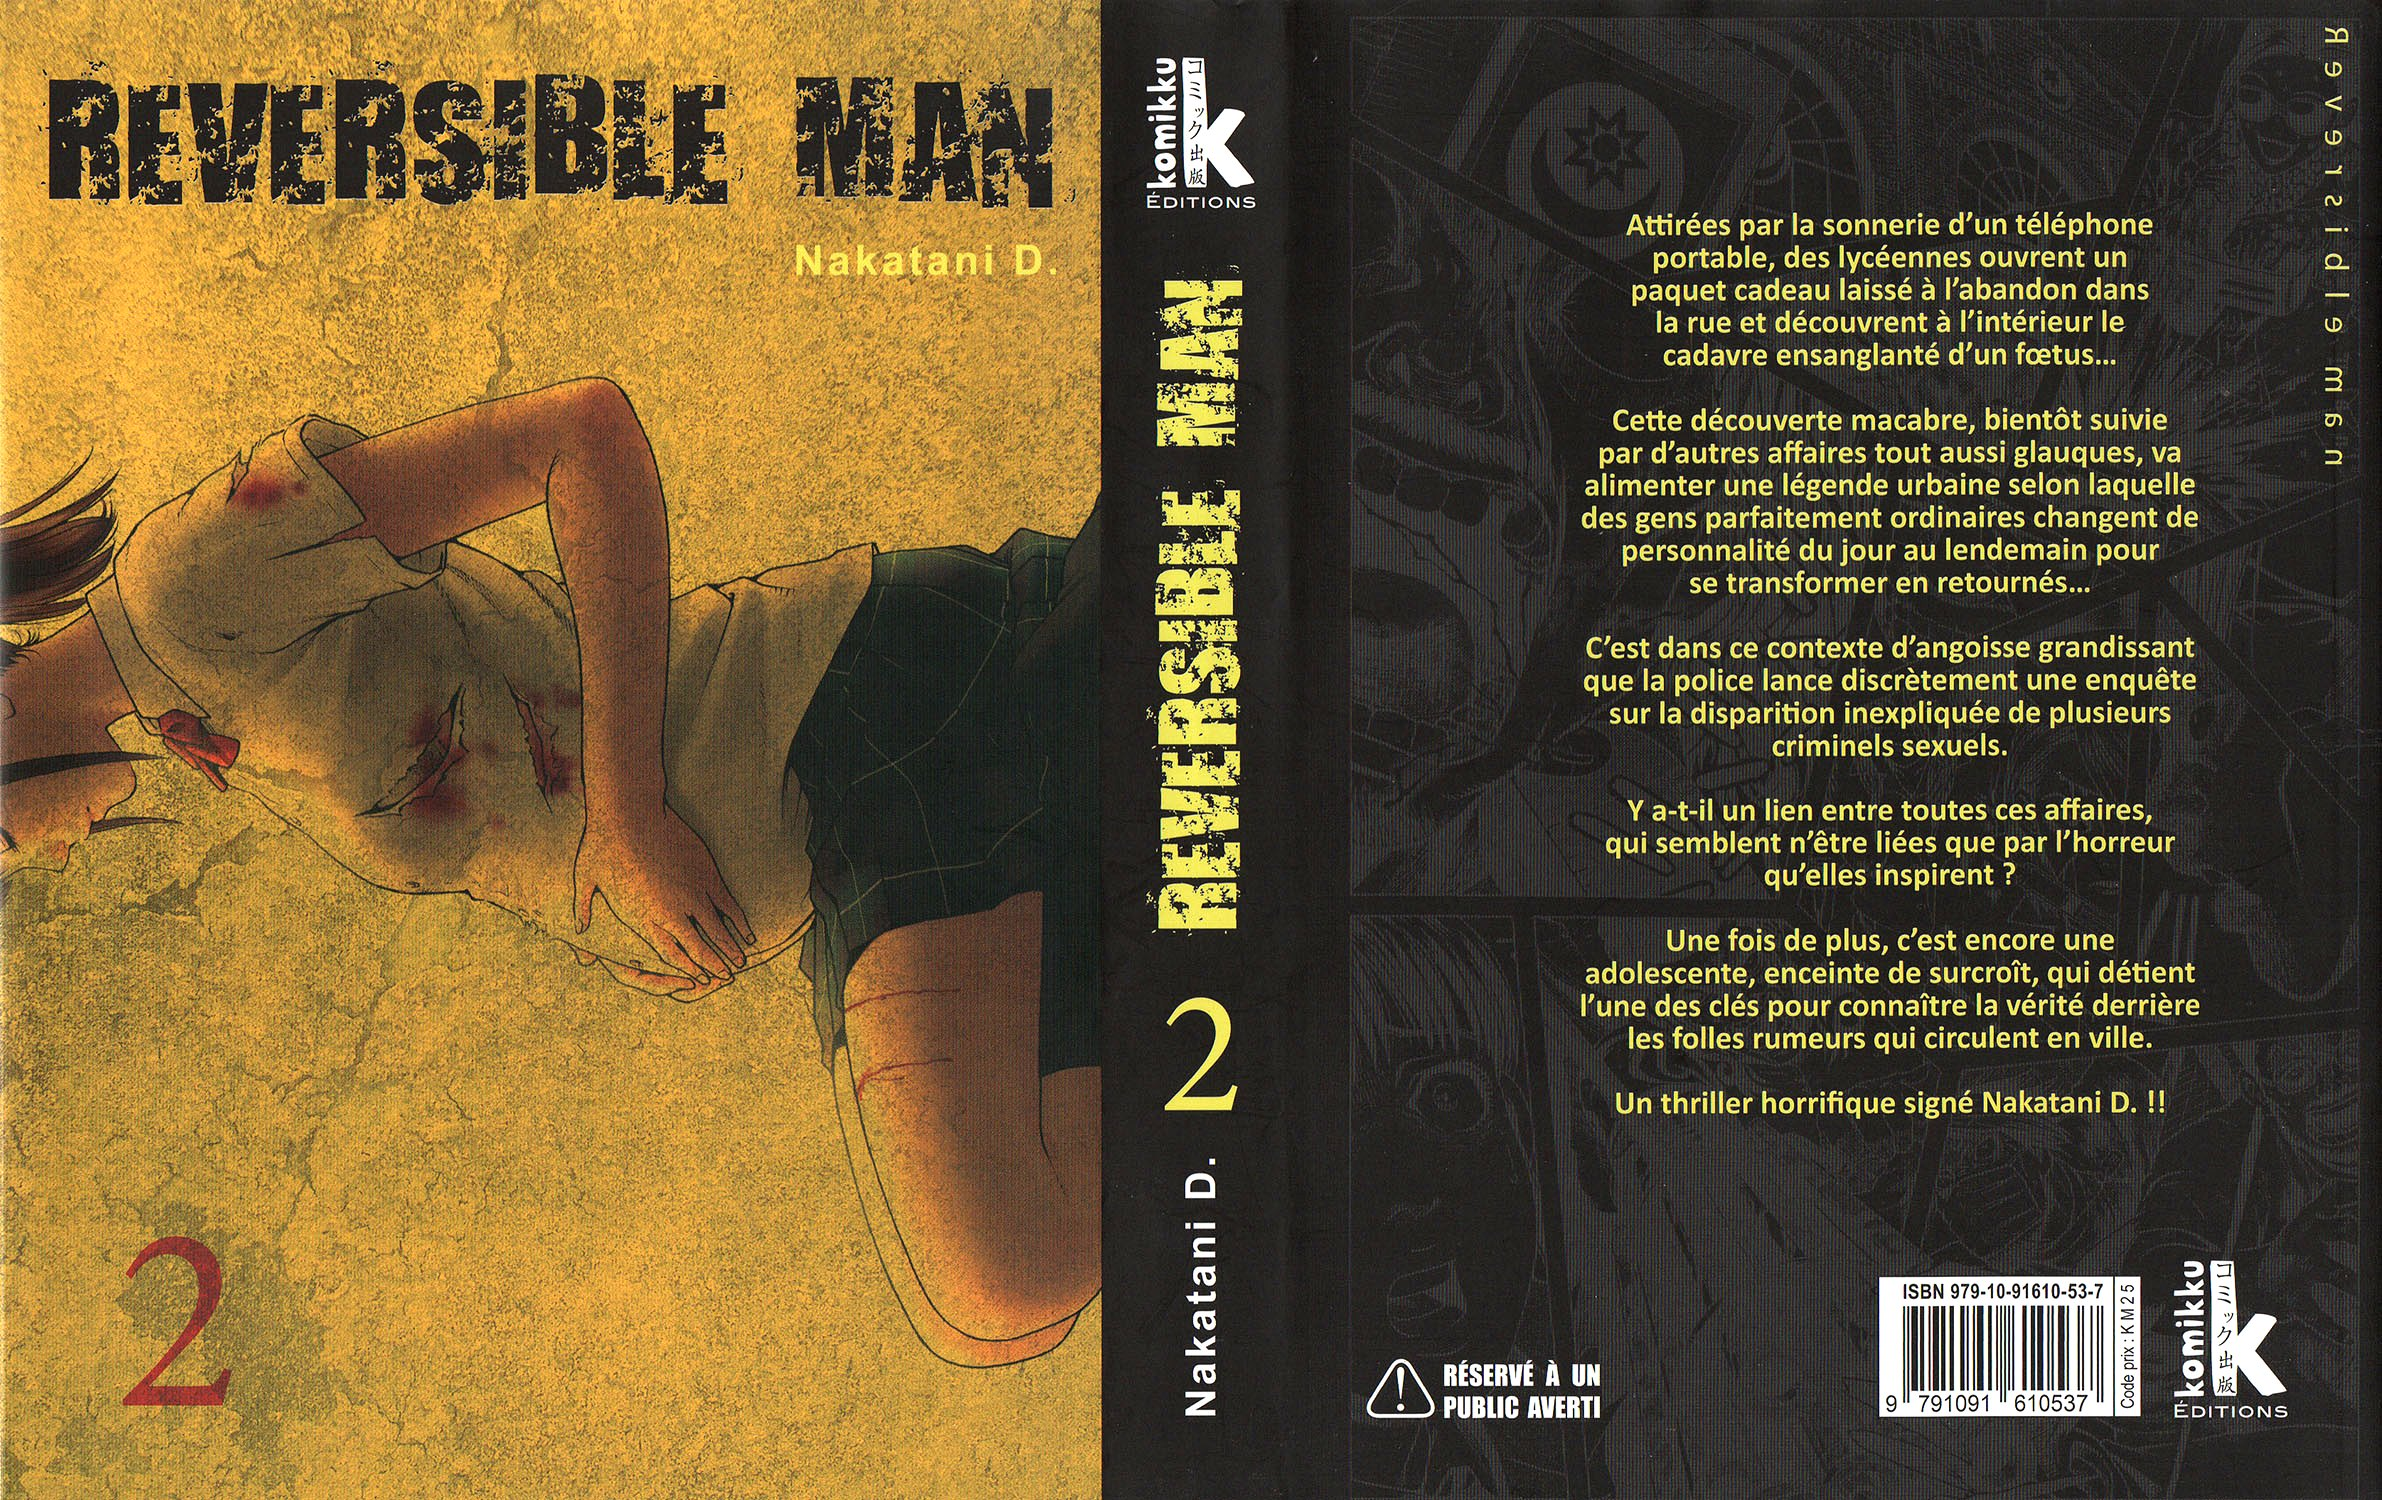 Reversible Man Volume 2 VF